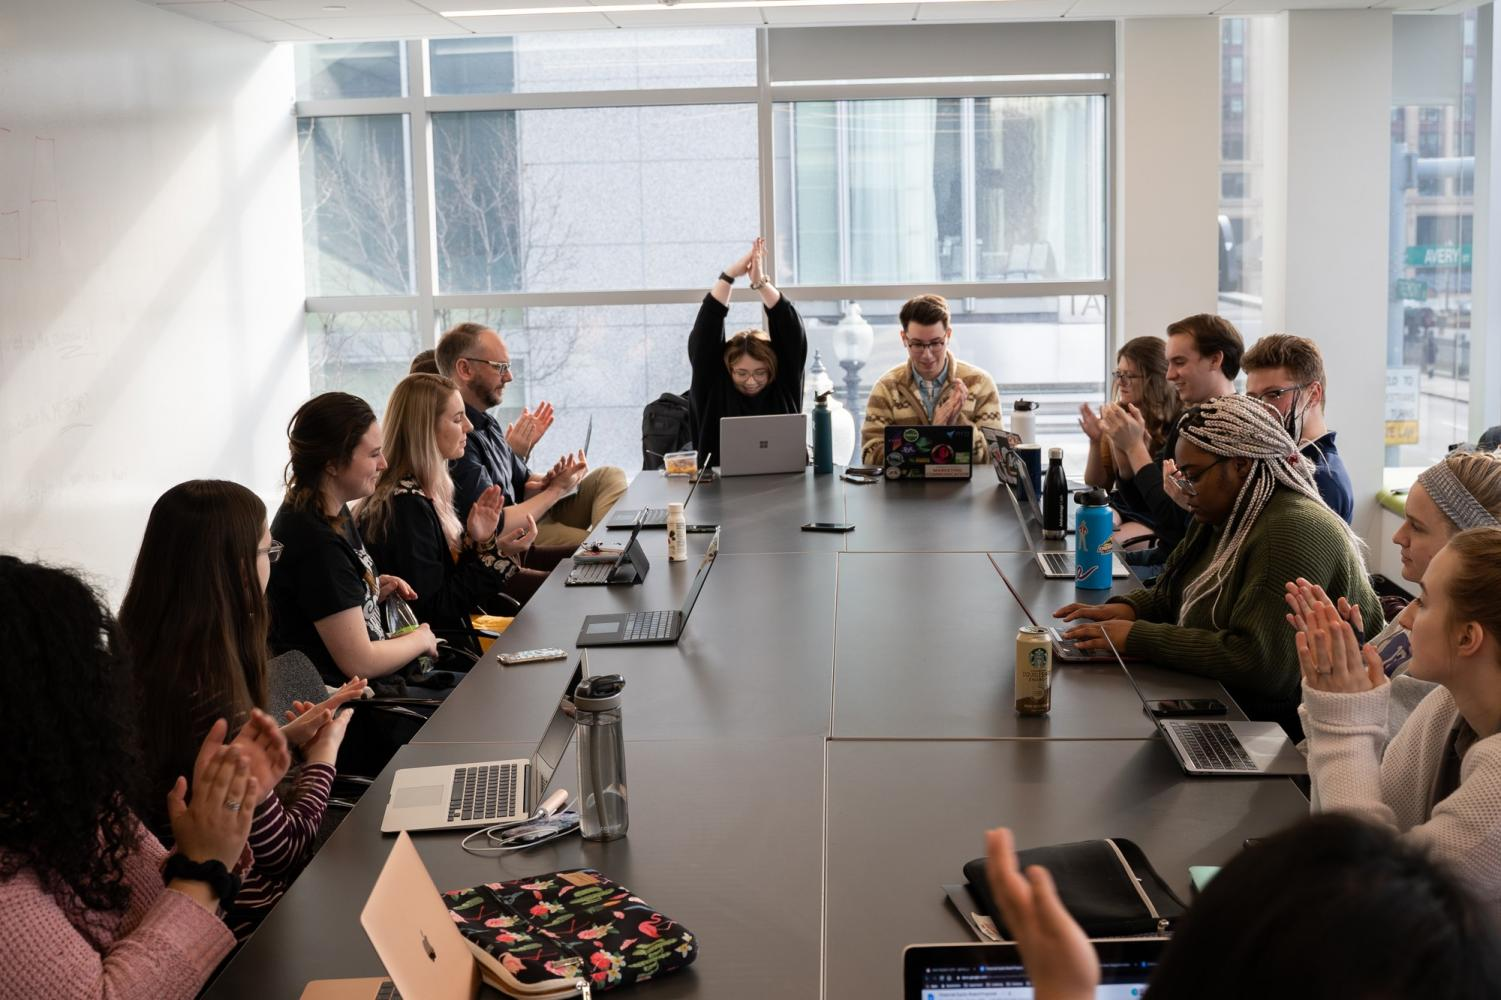 The Student Government Association met in a joint session meeting last week. Photo credit: Yongze Wang